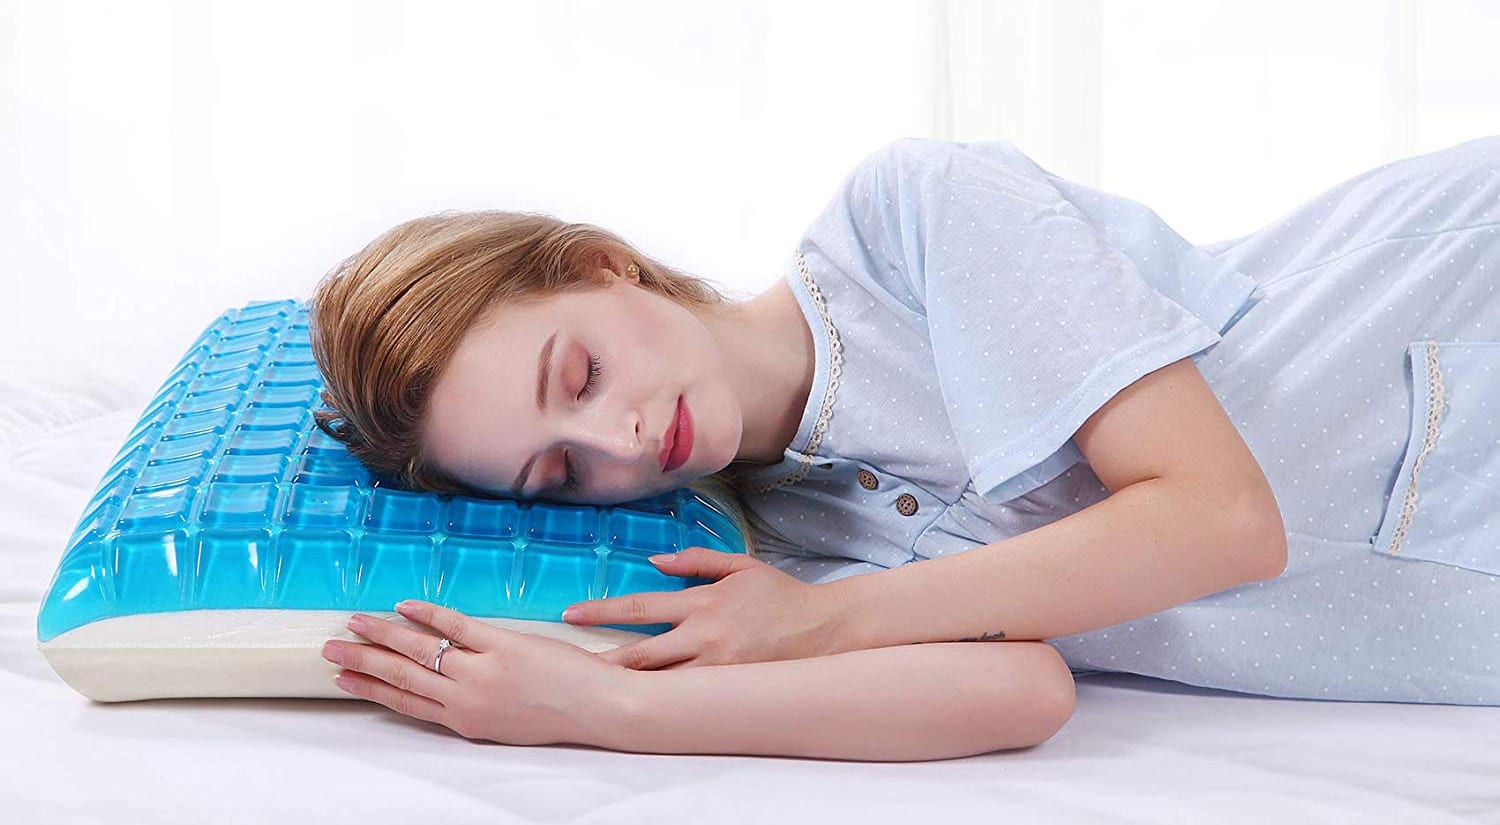 Best Cool Gel Pillow Reviews and Buying Guide by www.dailysleep.org